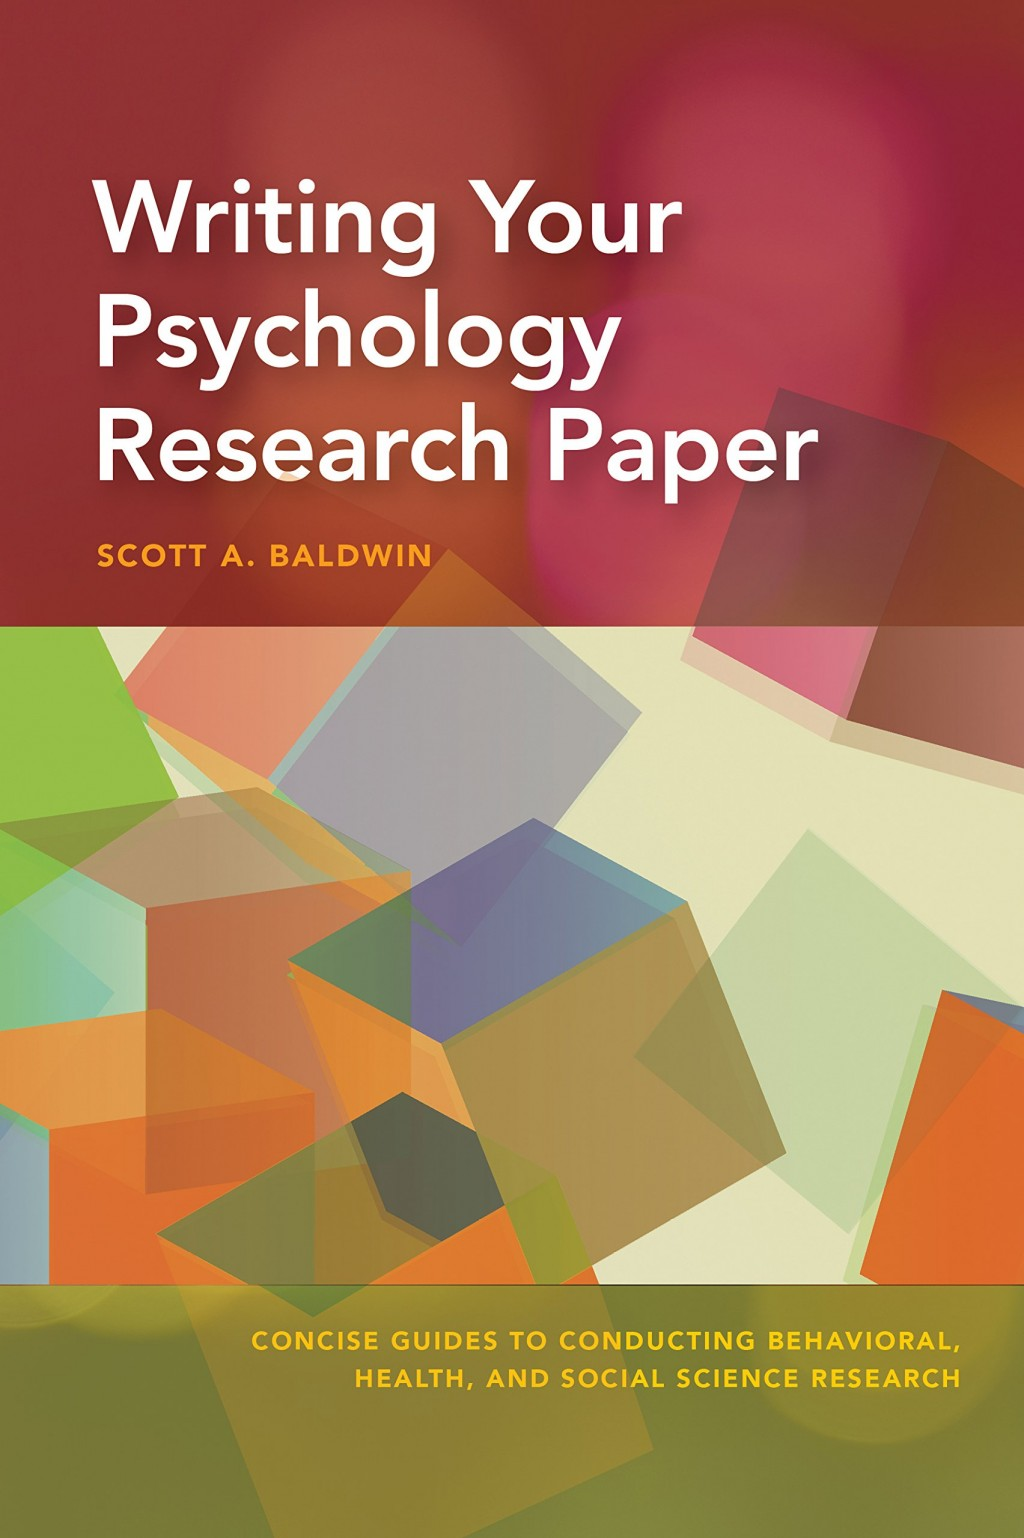 017 Research Paper Apa On Anxiety Breathtaking Large